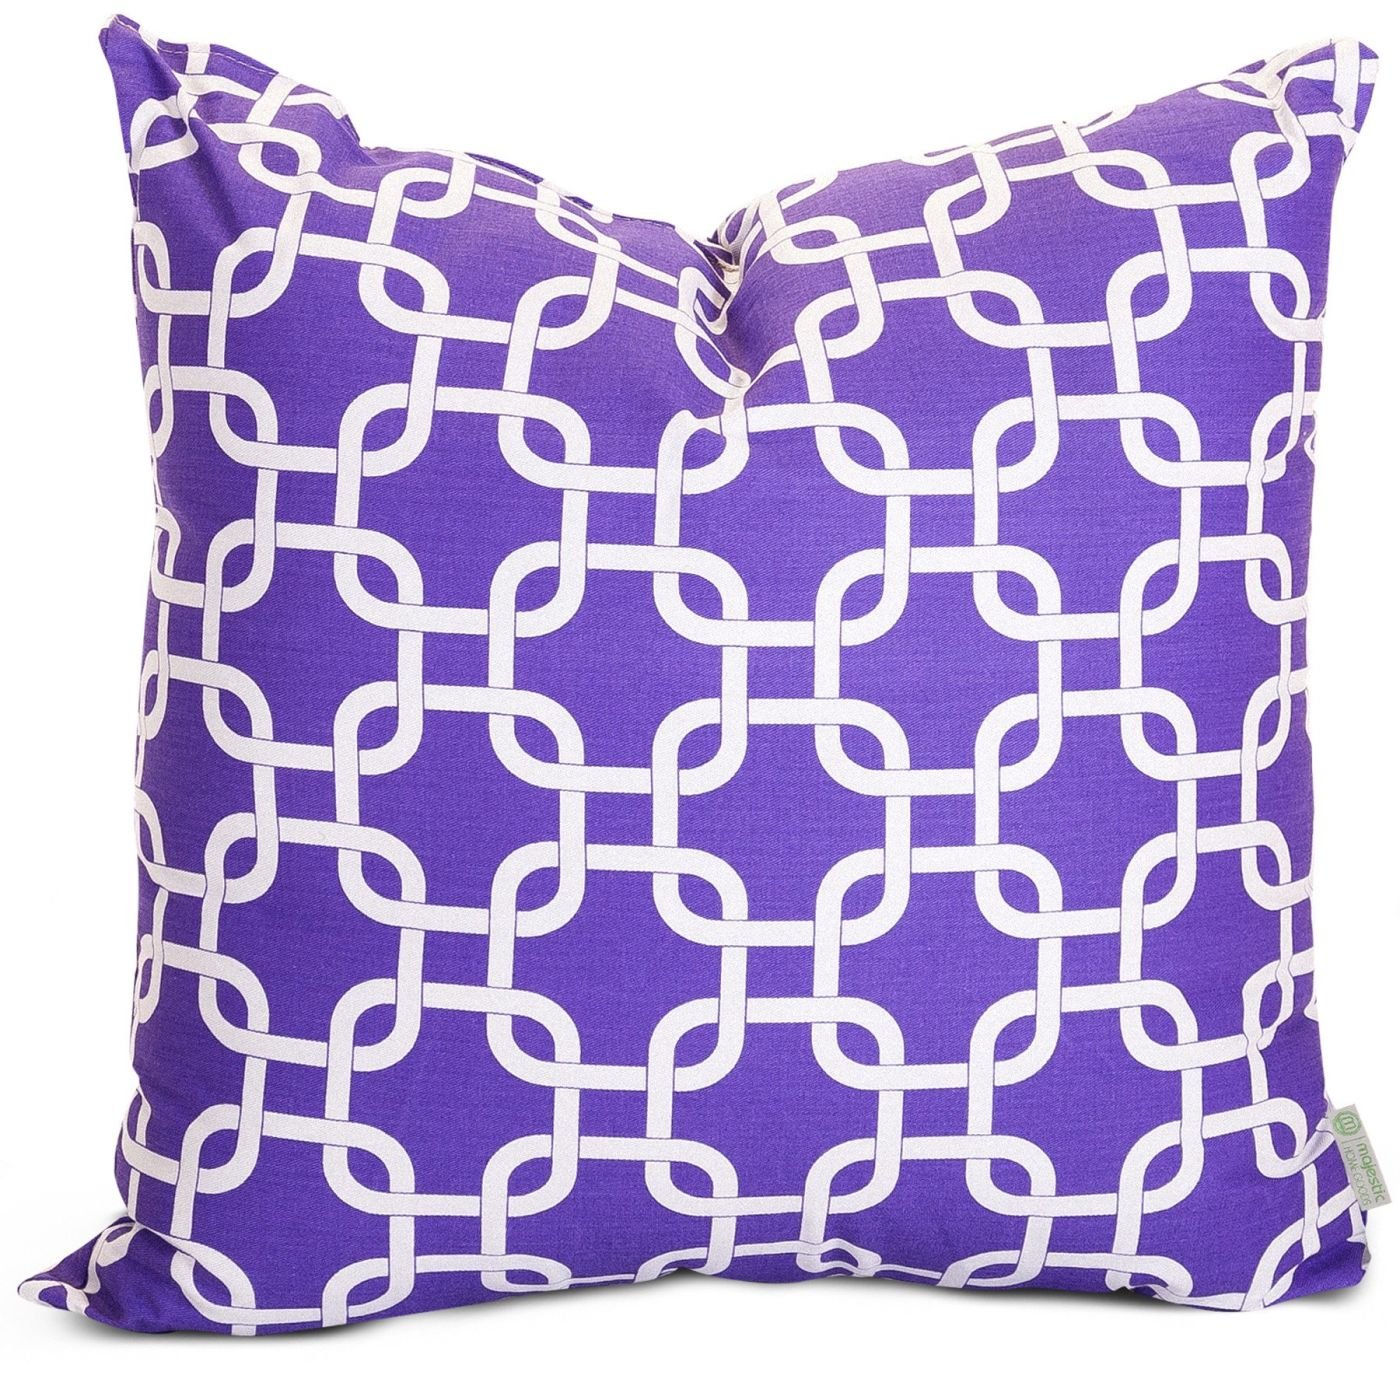 Majestic Home Purple Links Large Pillow 85907220865. Only $42.90 at Contemporary Furniture ...